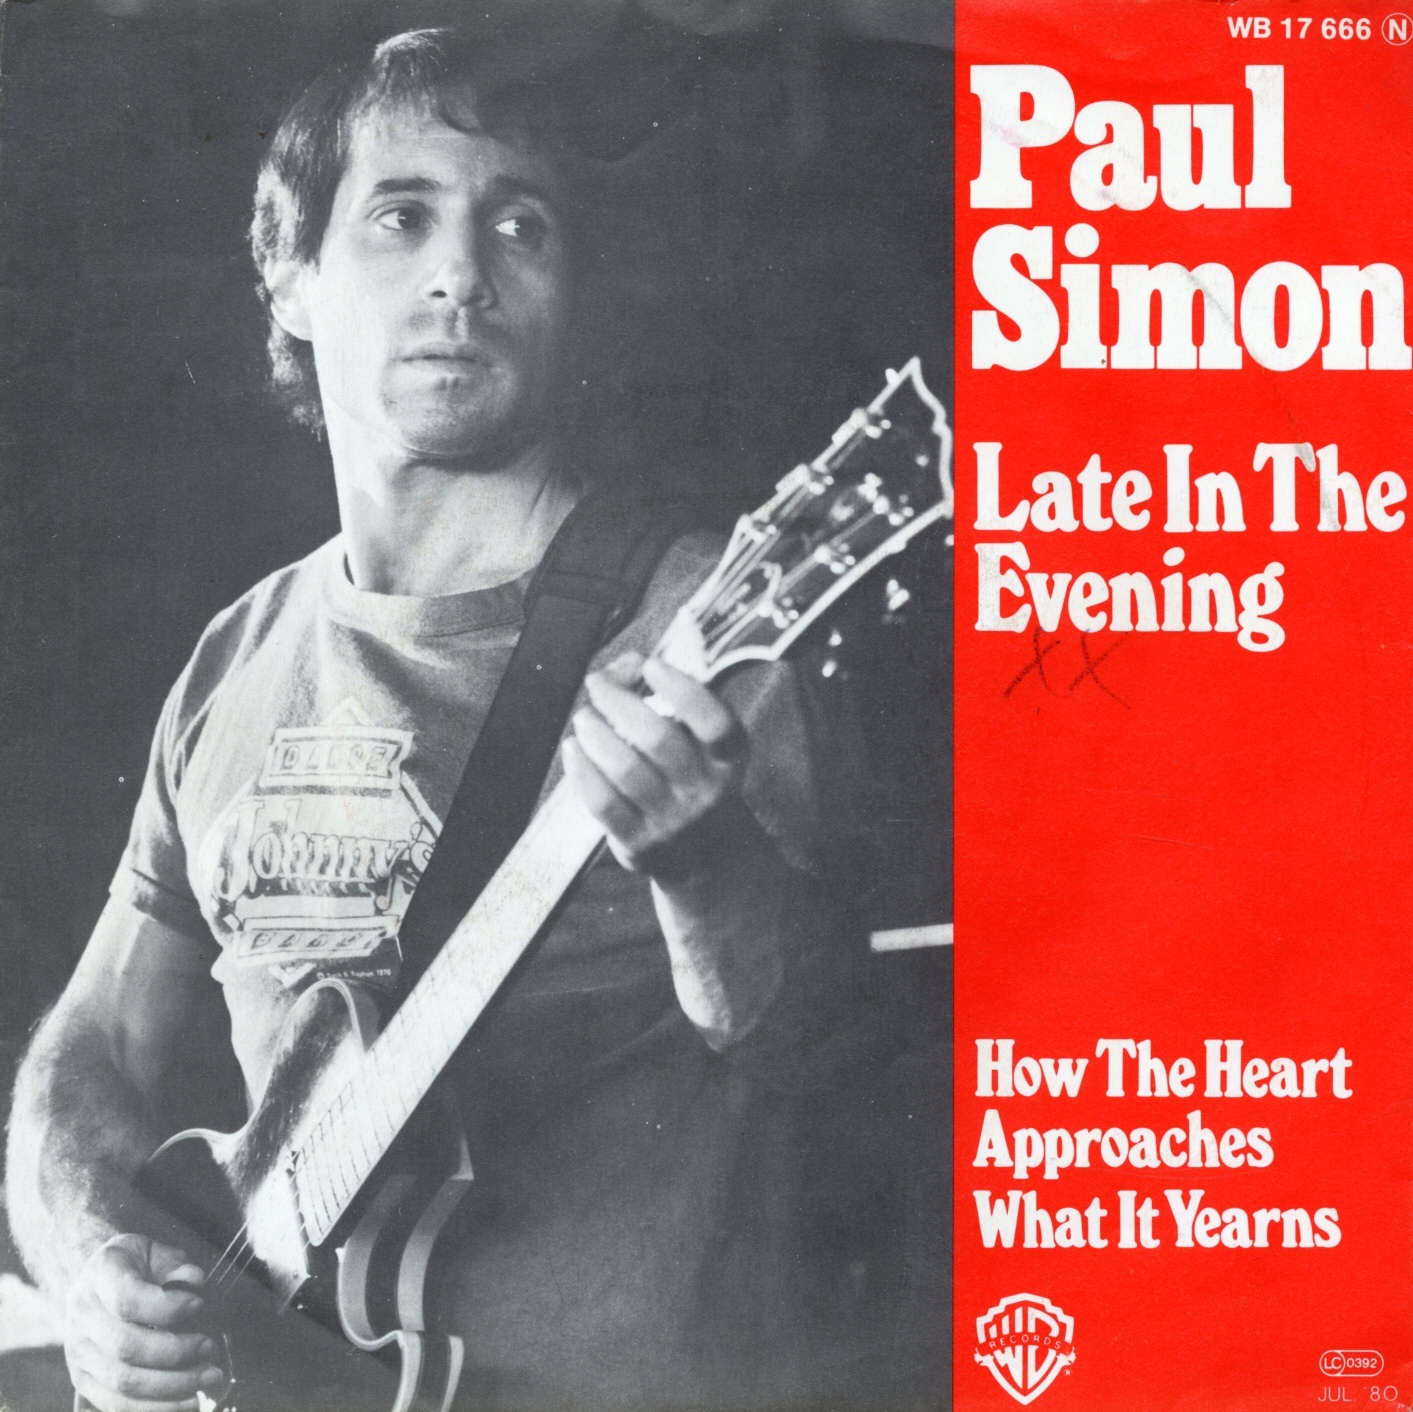 Late in the evening (Foto: Paul Simon)